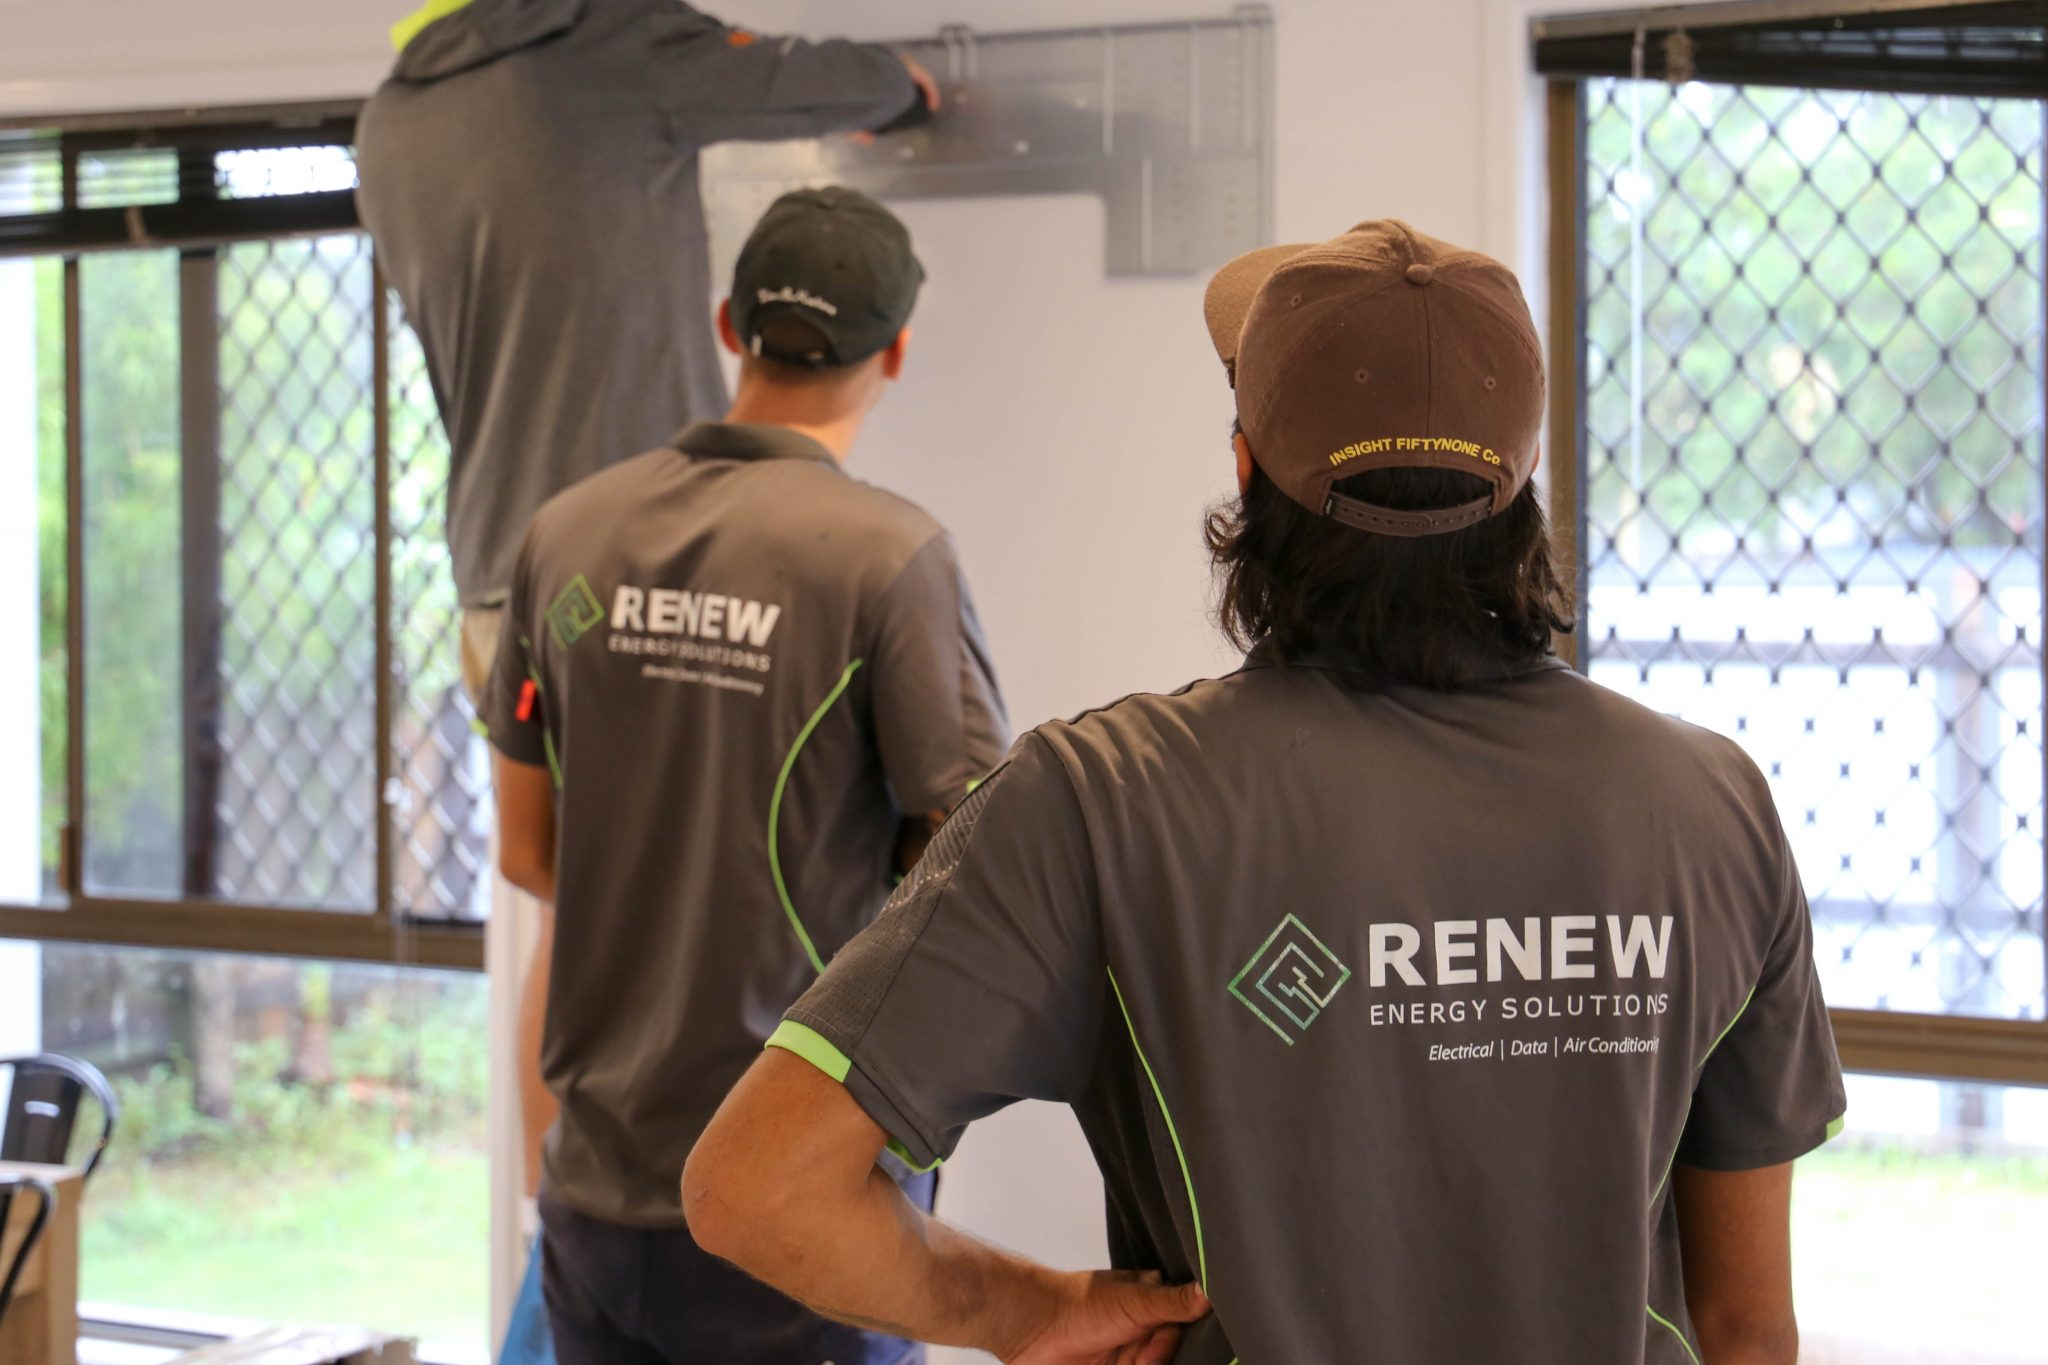 Renew Energy Solutions